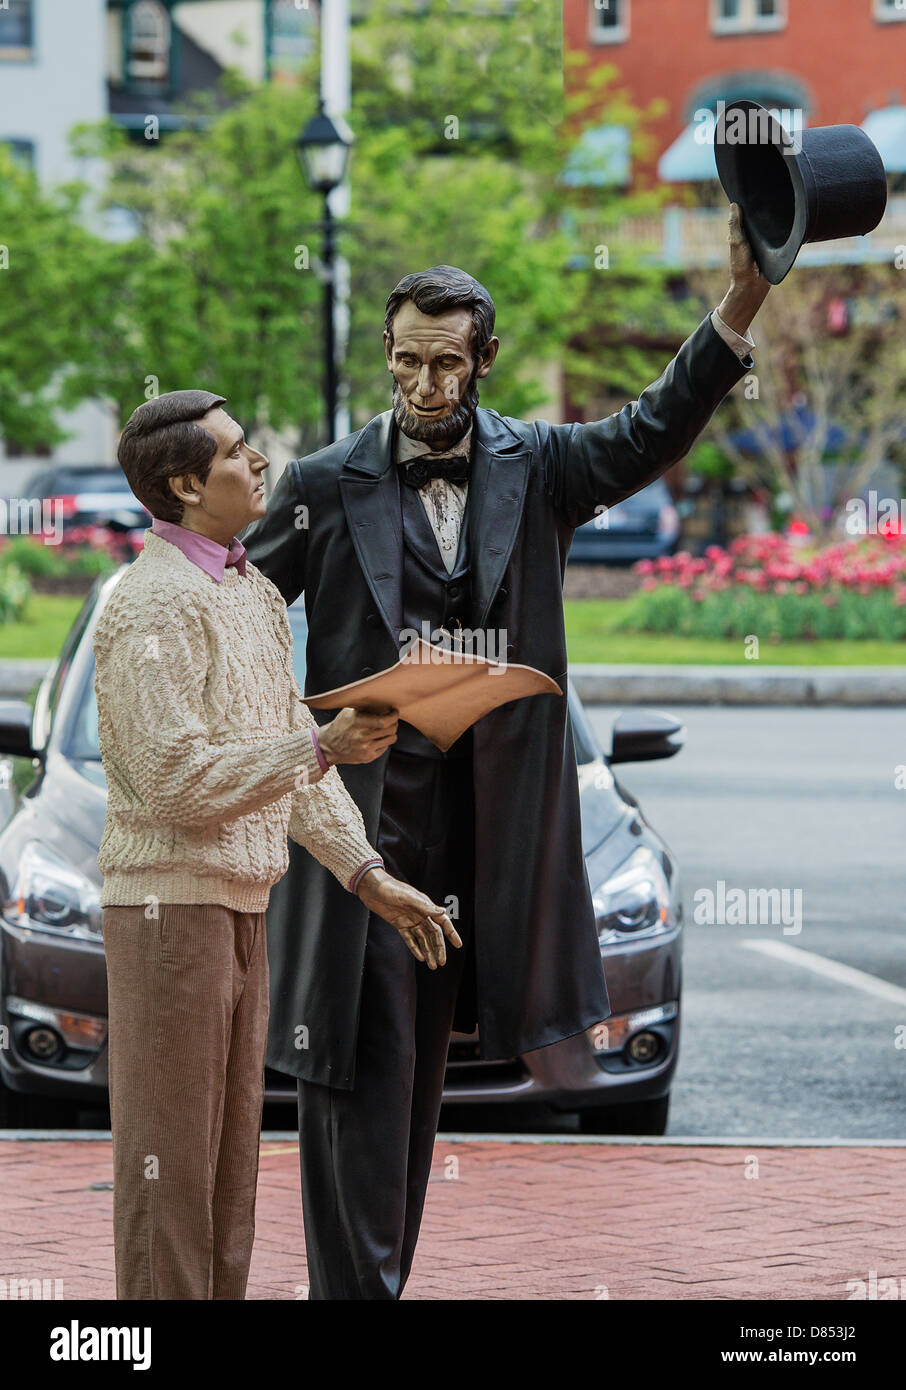 'Return Visit' Lincoln statue located in Lincoln Square, Gettysburg, Pennsylvania, USA - Stock Image